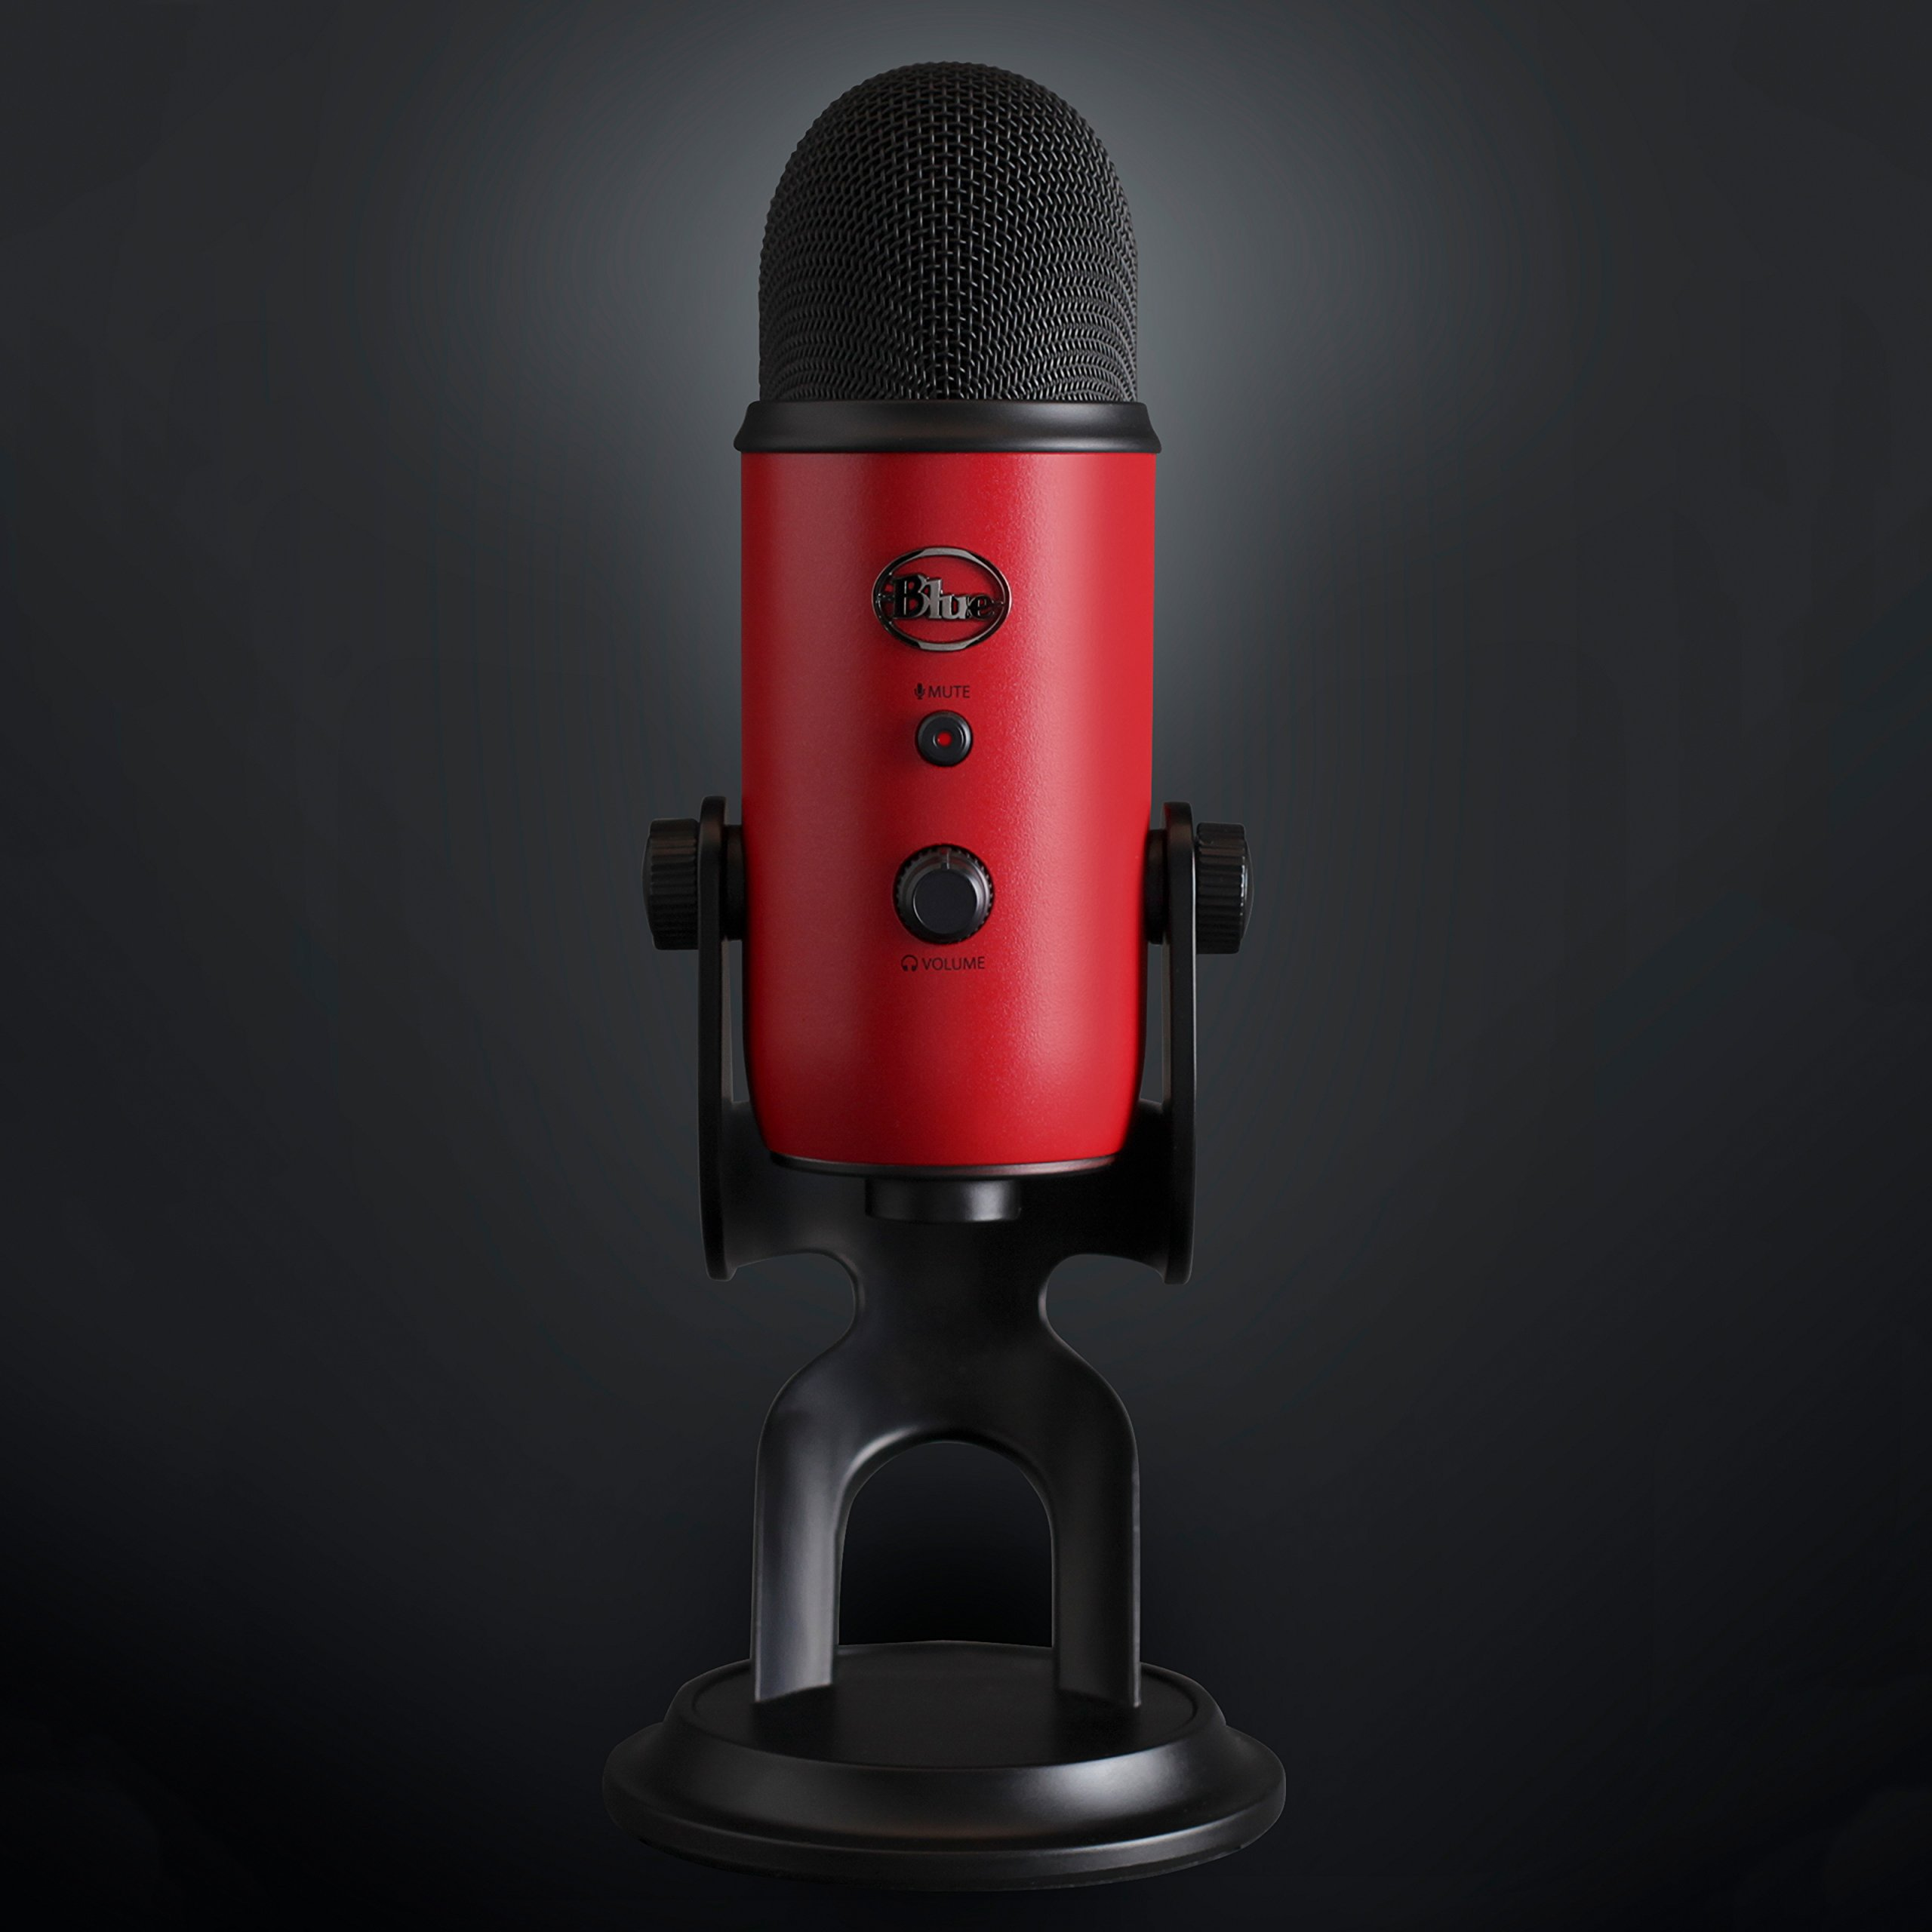 Blue Yeti USB Microphone - Satin Red by Blue (Image #7)